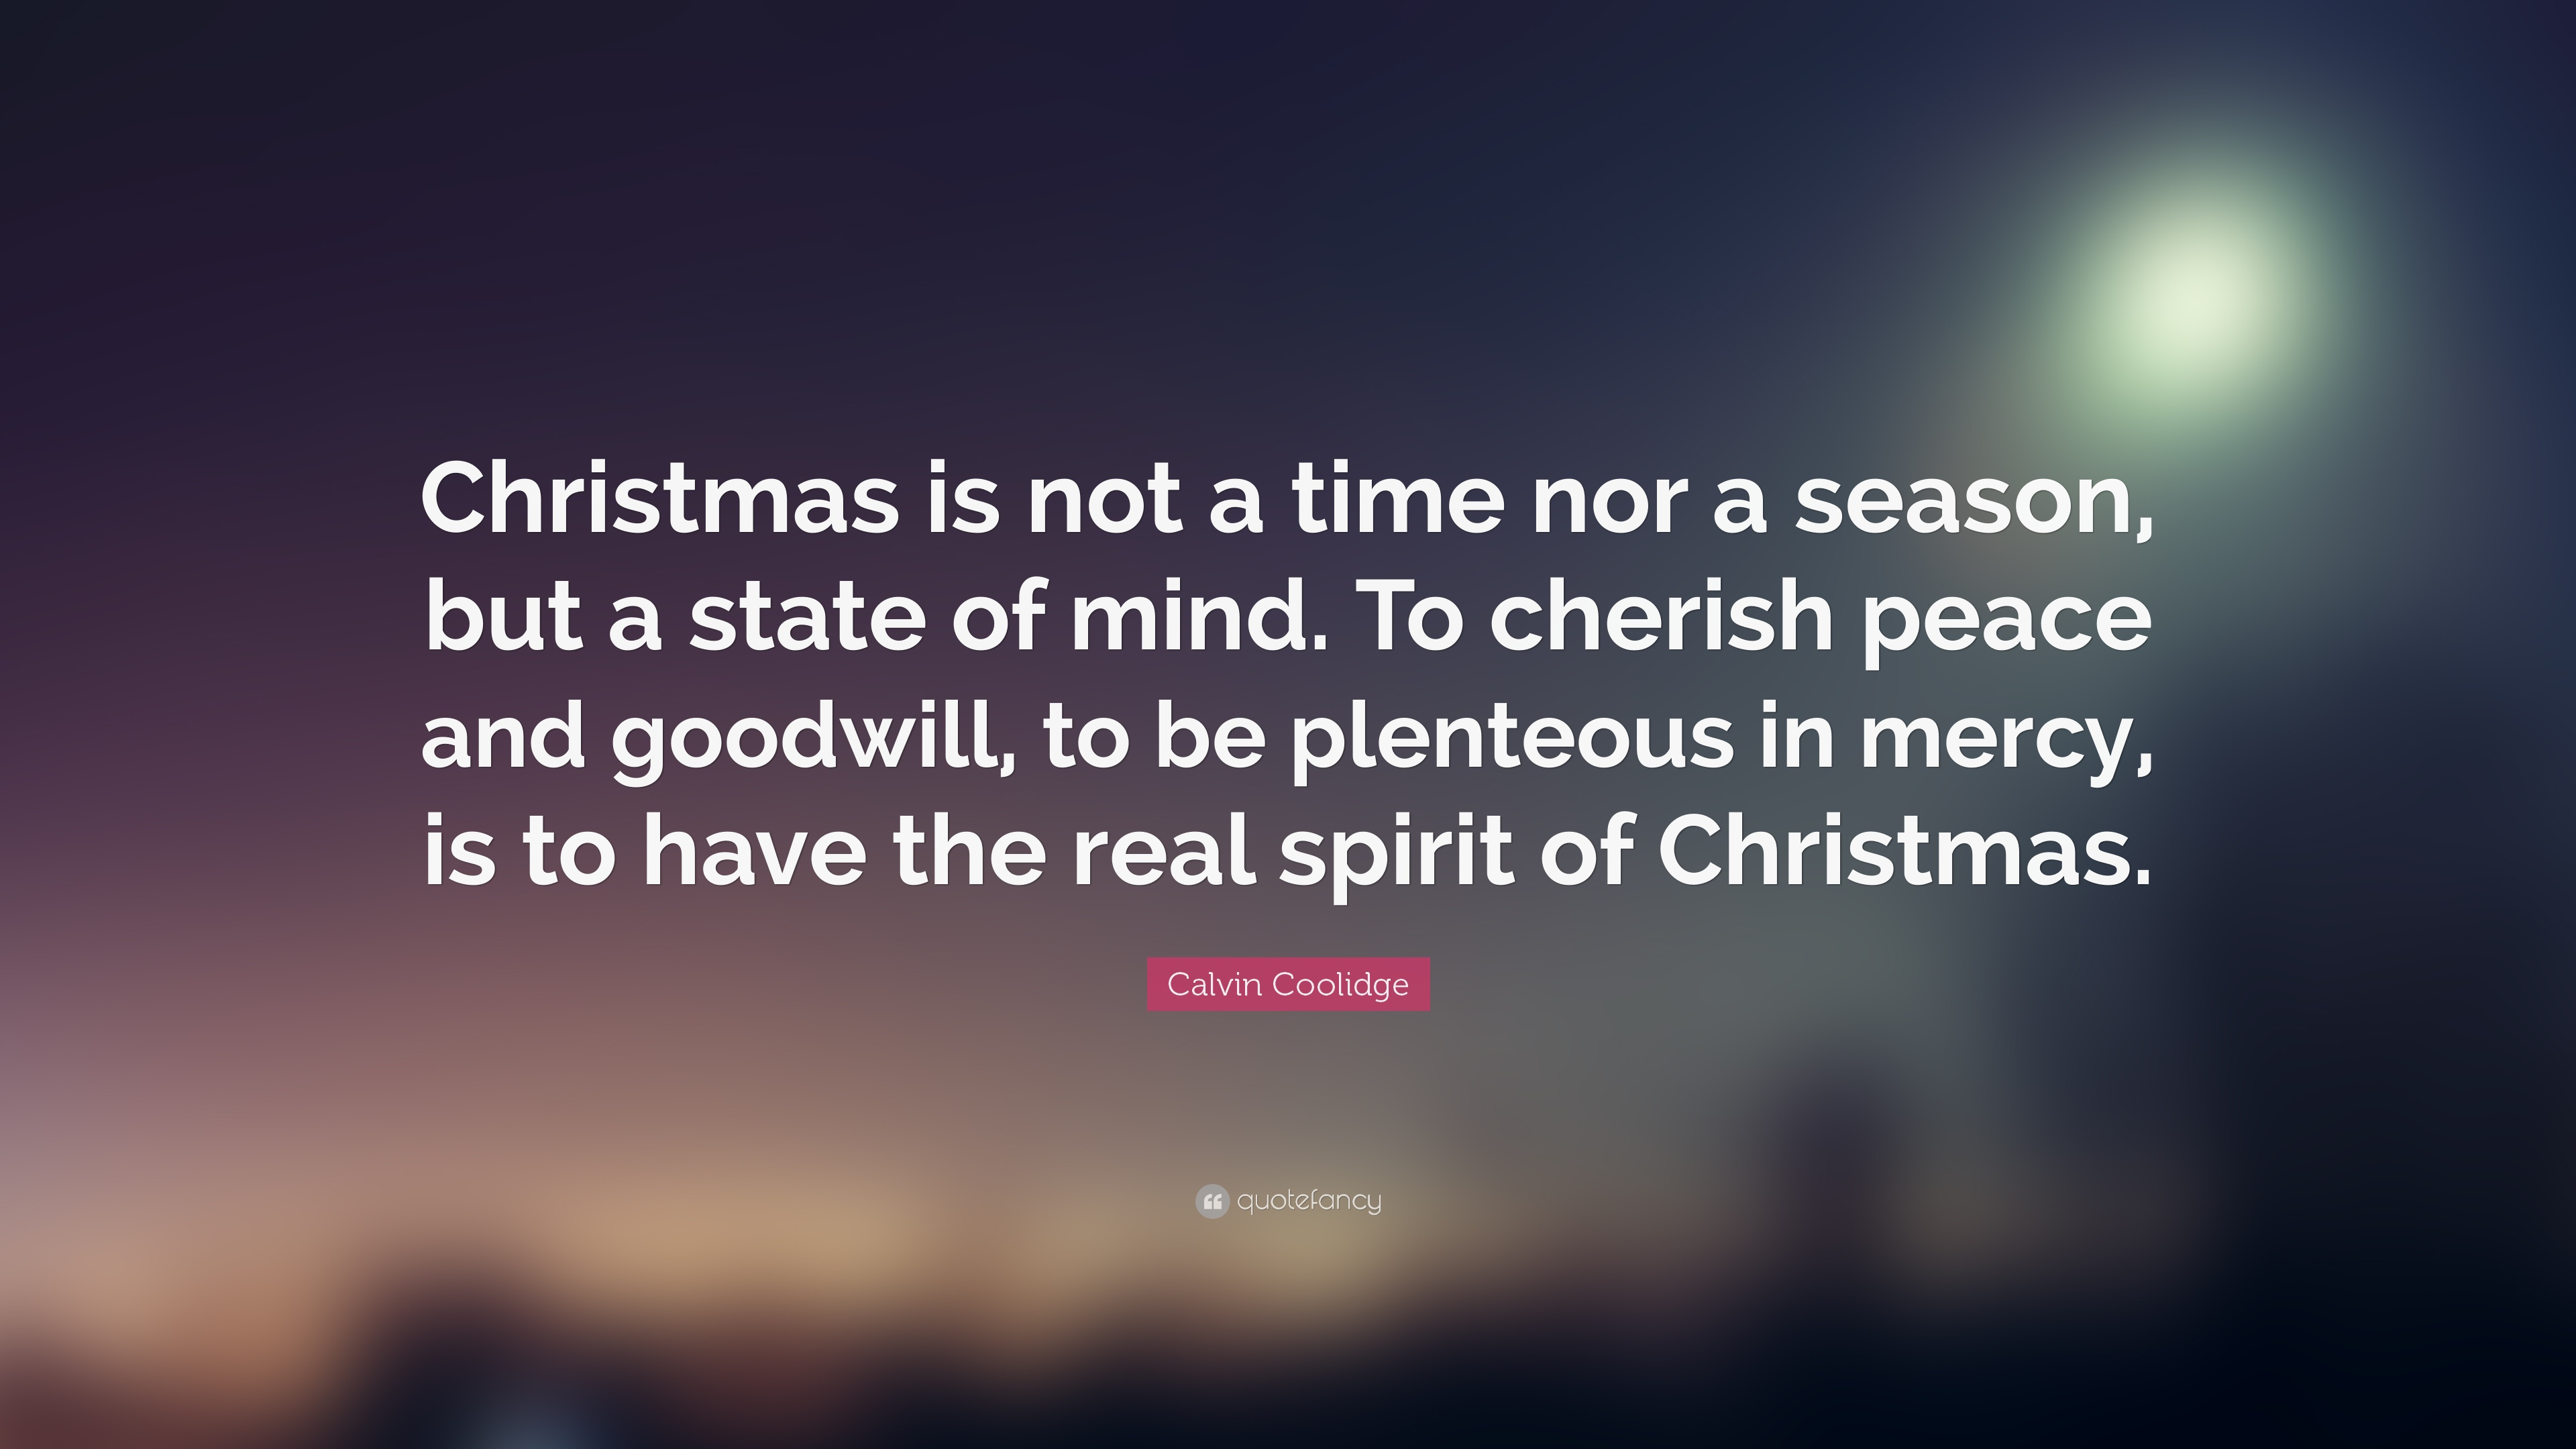 Quotes For Christmas Christmas Quotes 30 Wallpapers  Quotefancy